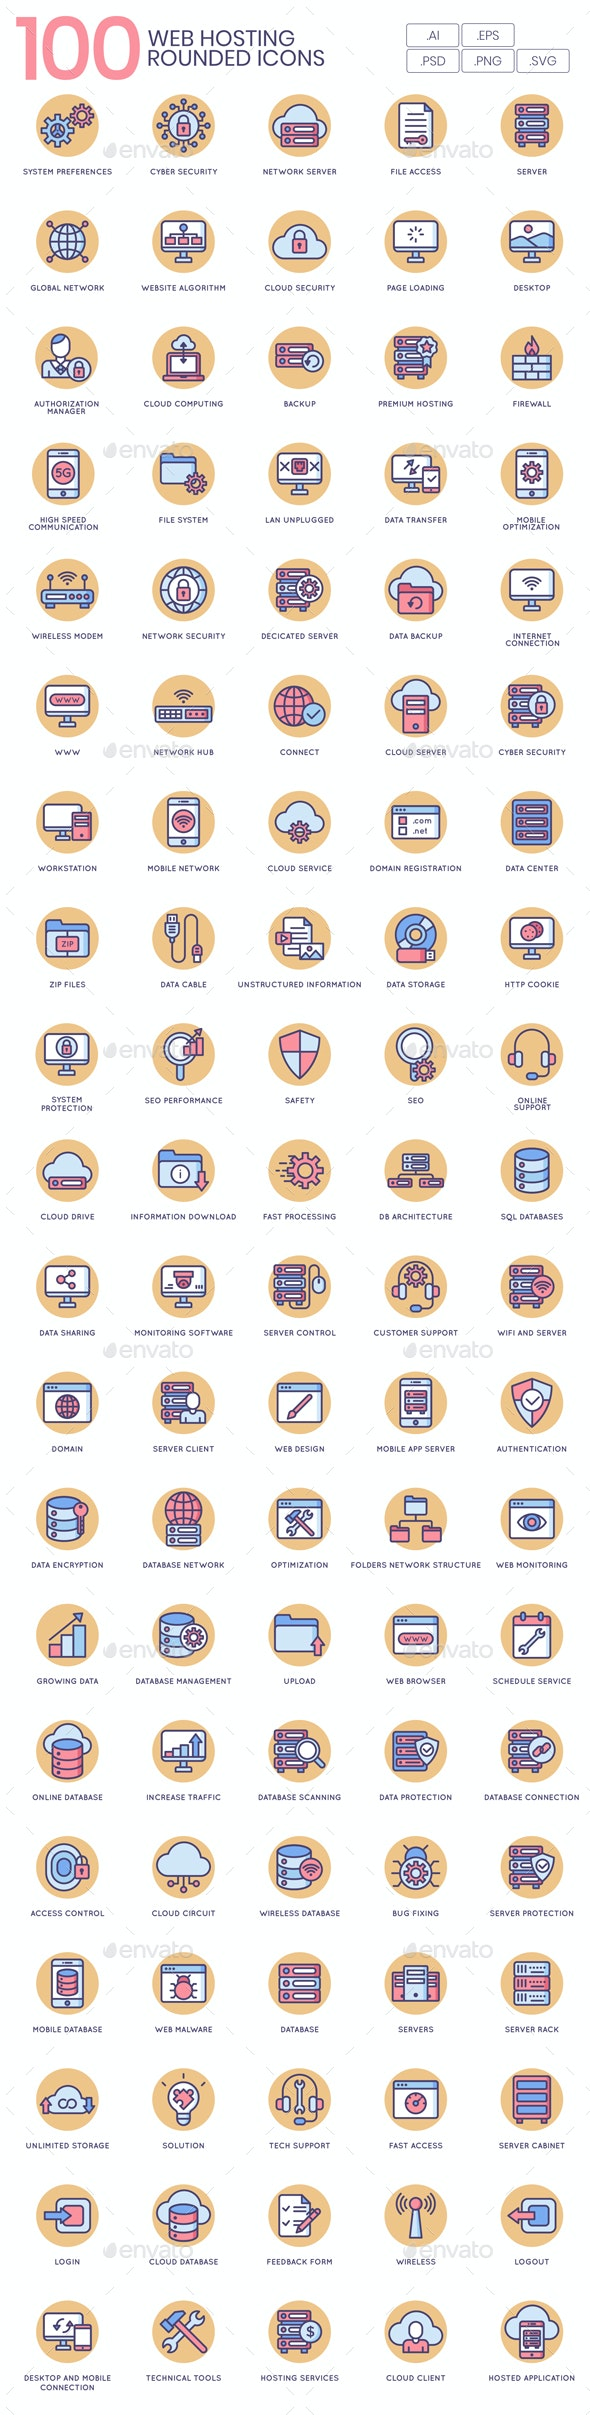 Web Hosting Icons - Butterscotch Series - Technology Icons